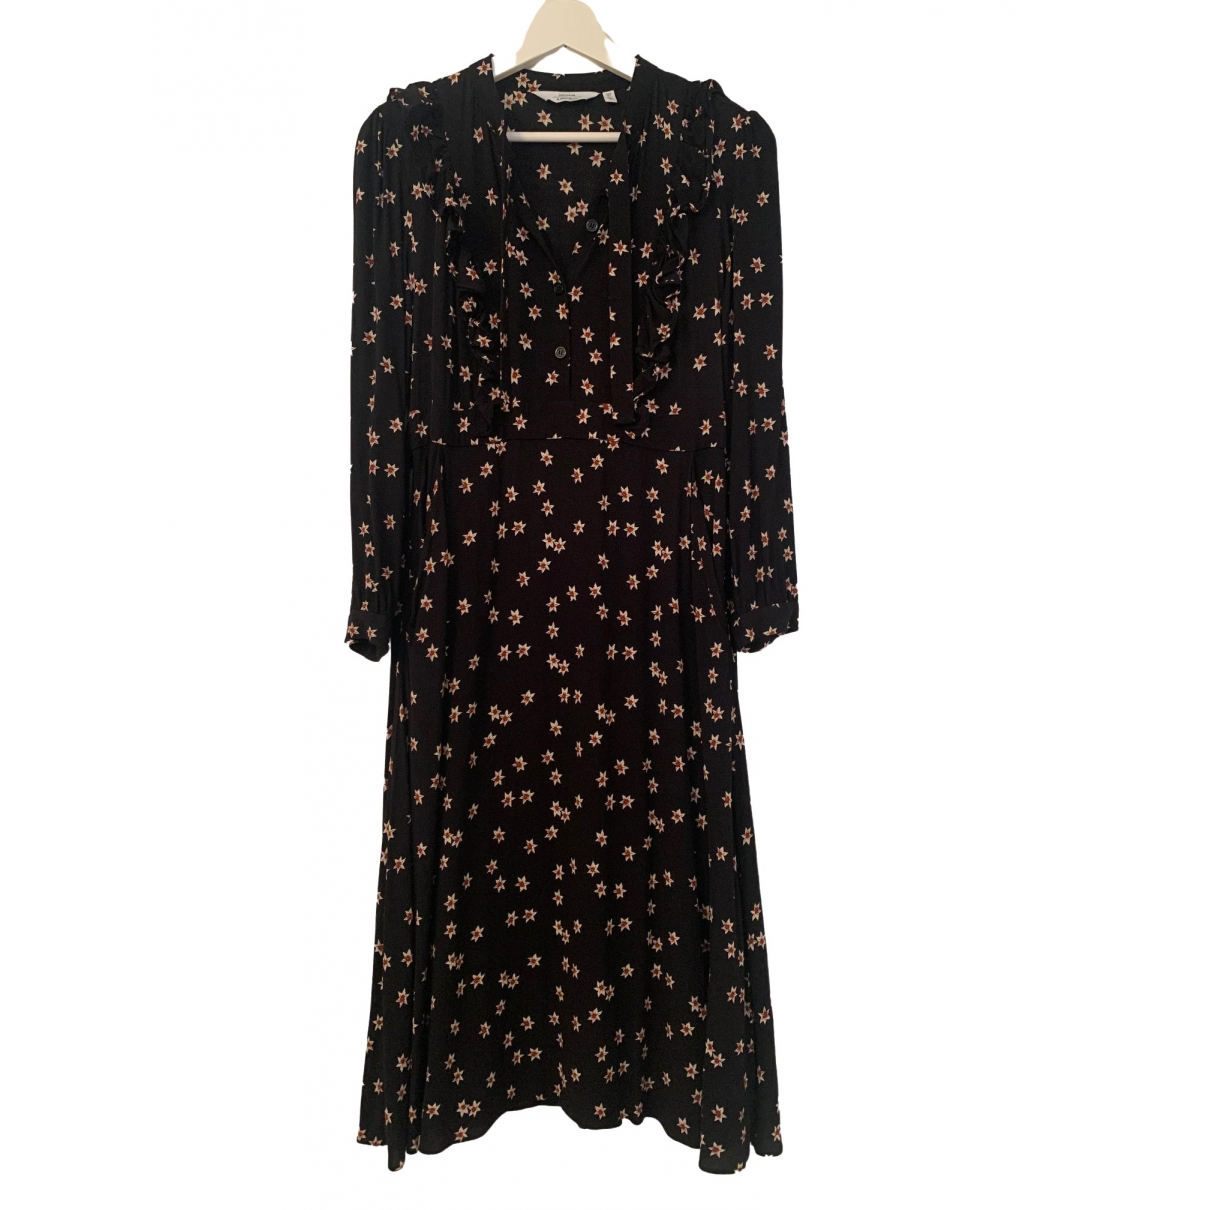 & Other Stories - Robe   pour femme - multicolore